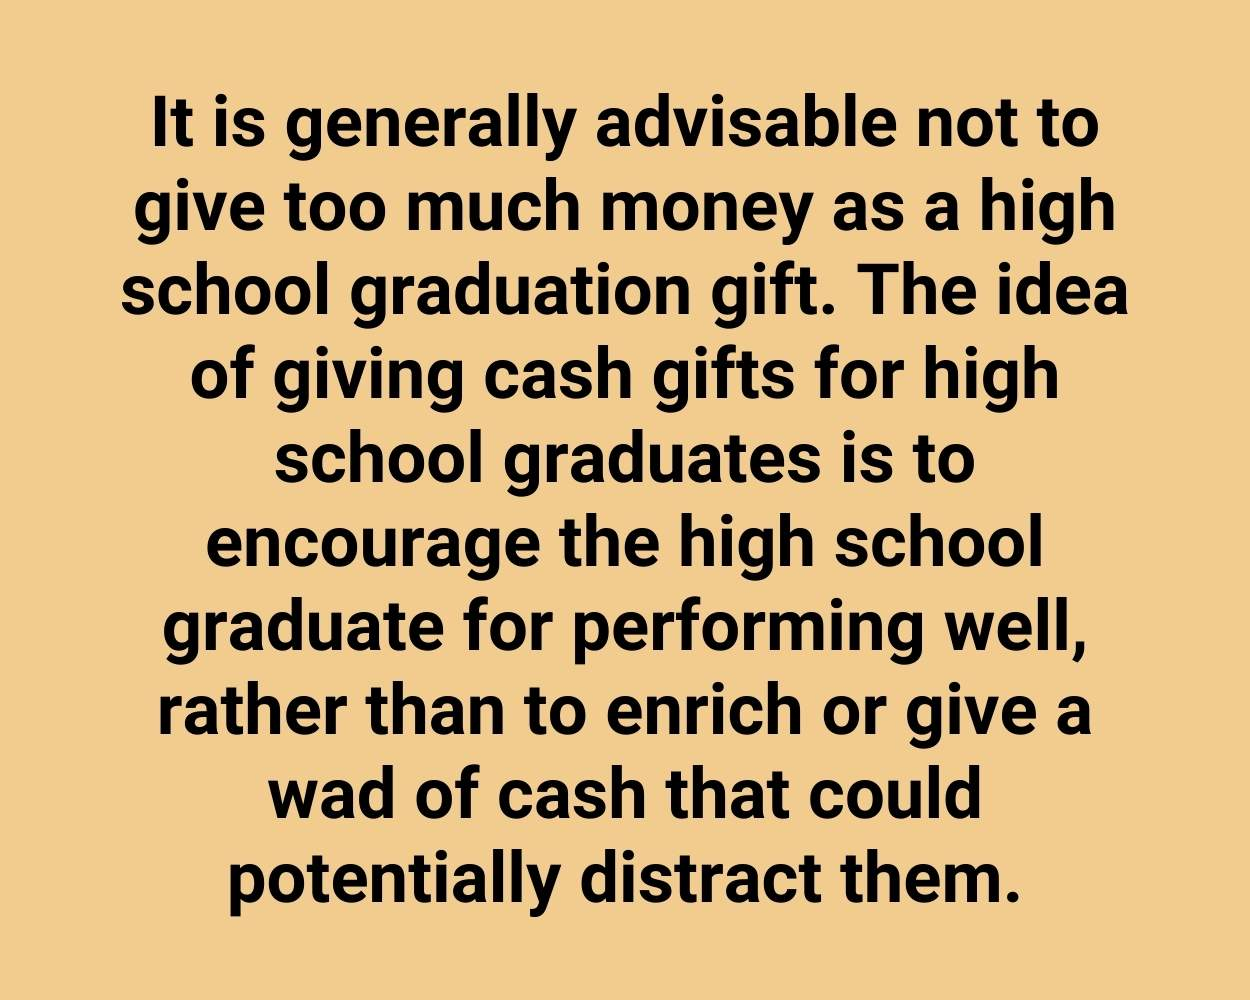 It is generally advisable not to give too much money as a high school graduation gift. The idea of giving cash gifts for high school graduates is to encourage the high school graduate for performing well, rather than to enrich or give a wad of cash that could potentially distract them.